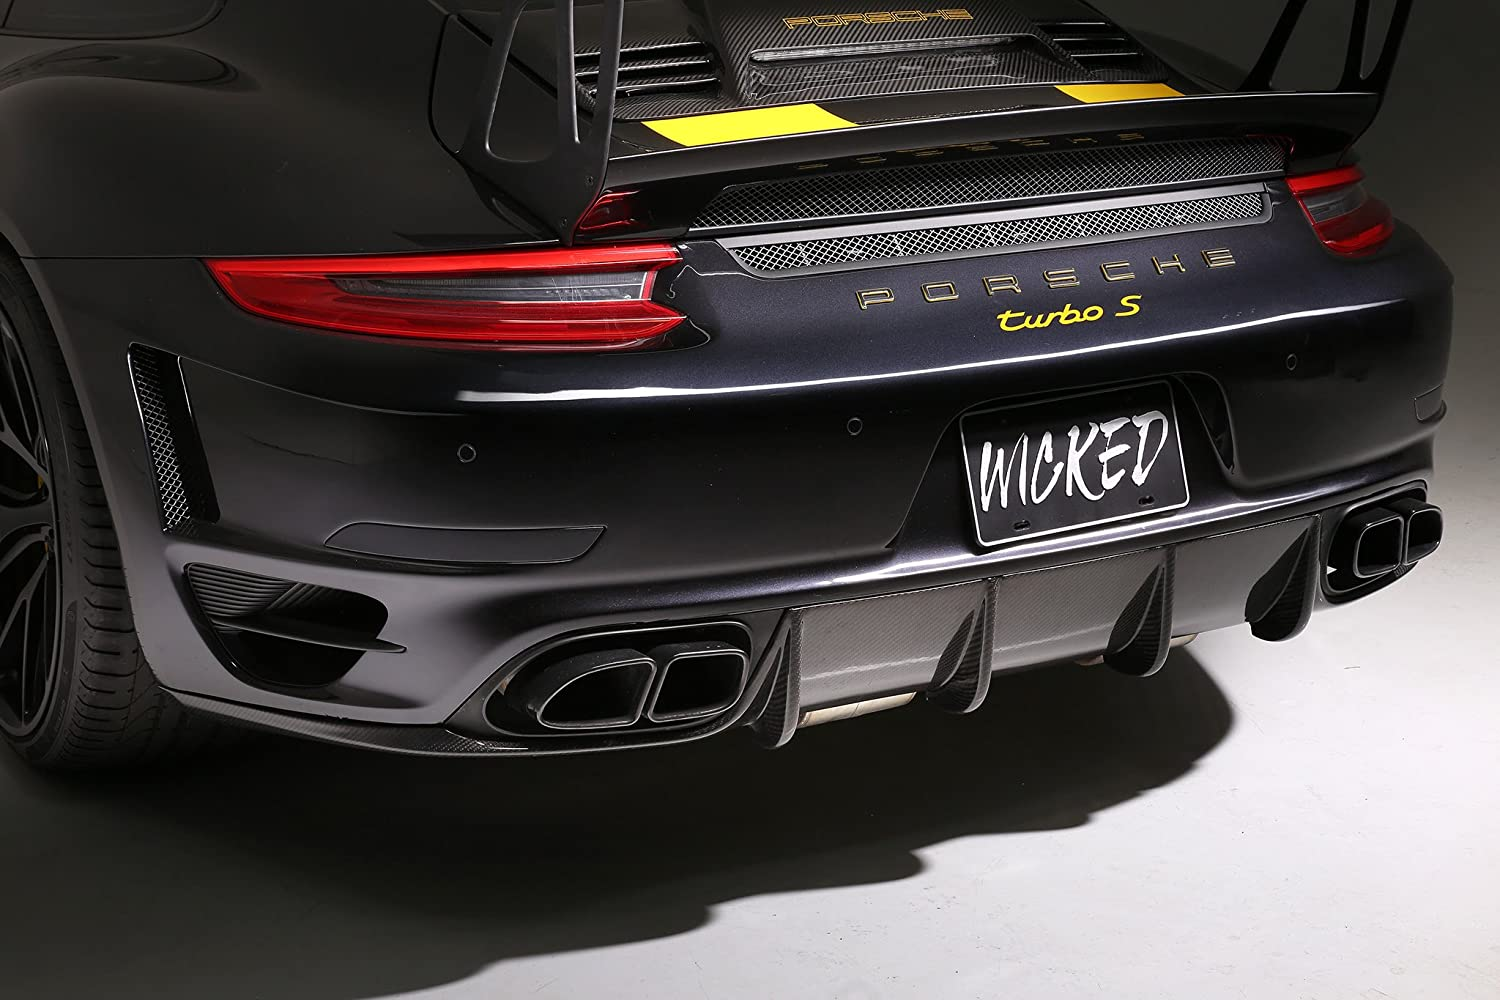 Amazon.com: Porsche 991.2 Turbo & 991 Turbo S Carbon Fiber Diffuser: Automotive